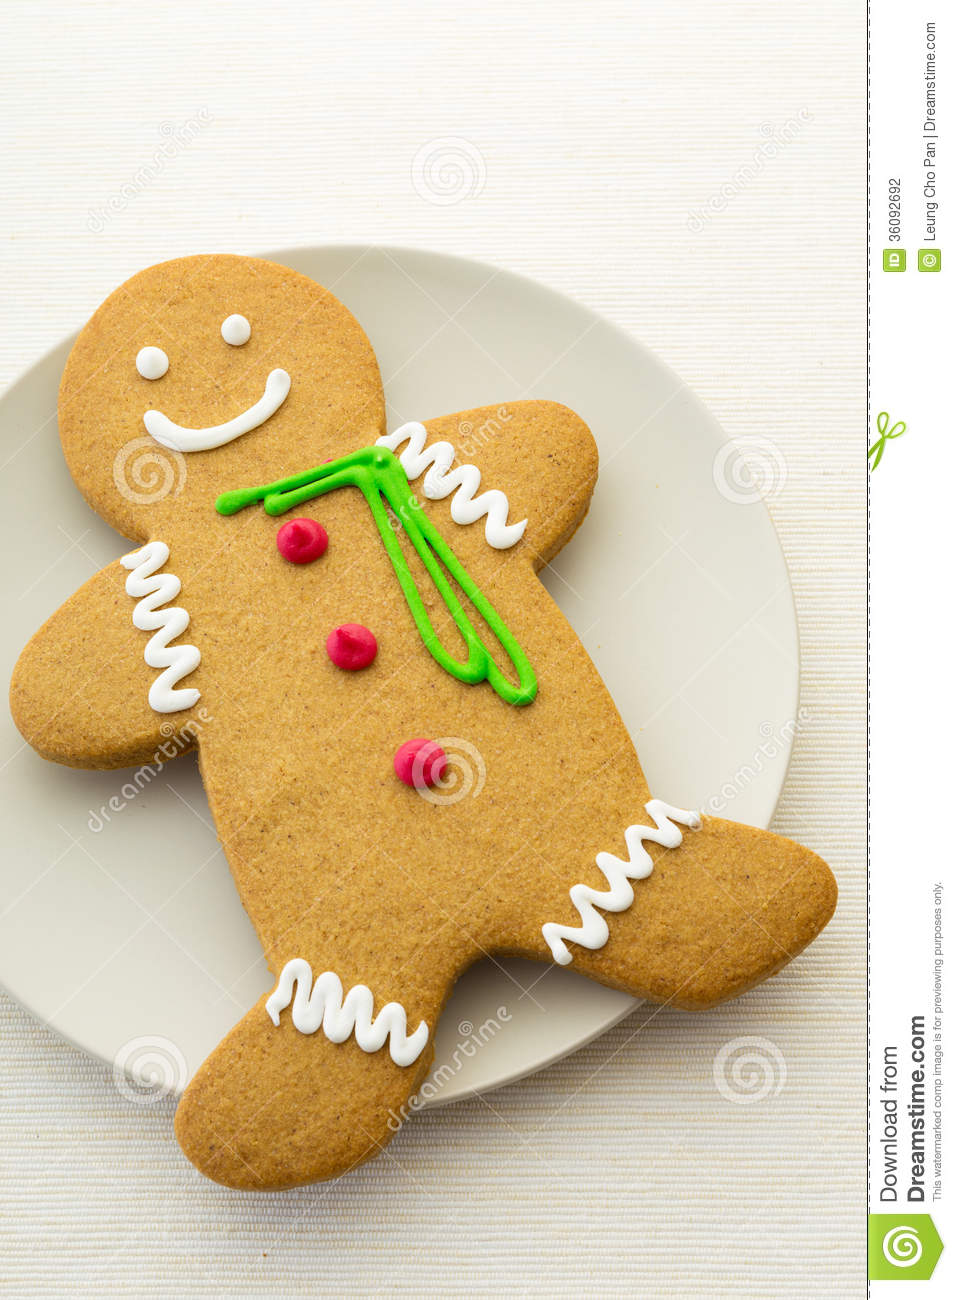 Gingerbread Man Cookies Stock Photography - Image: 36092692